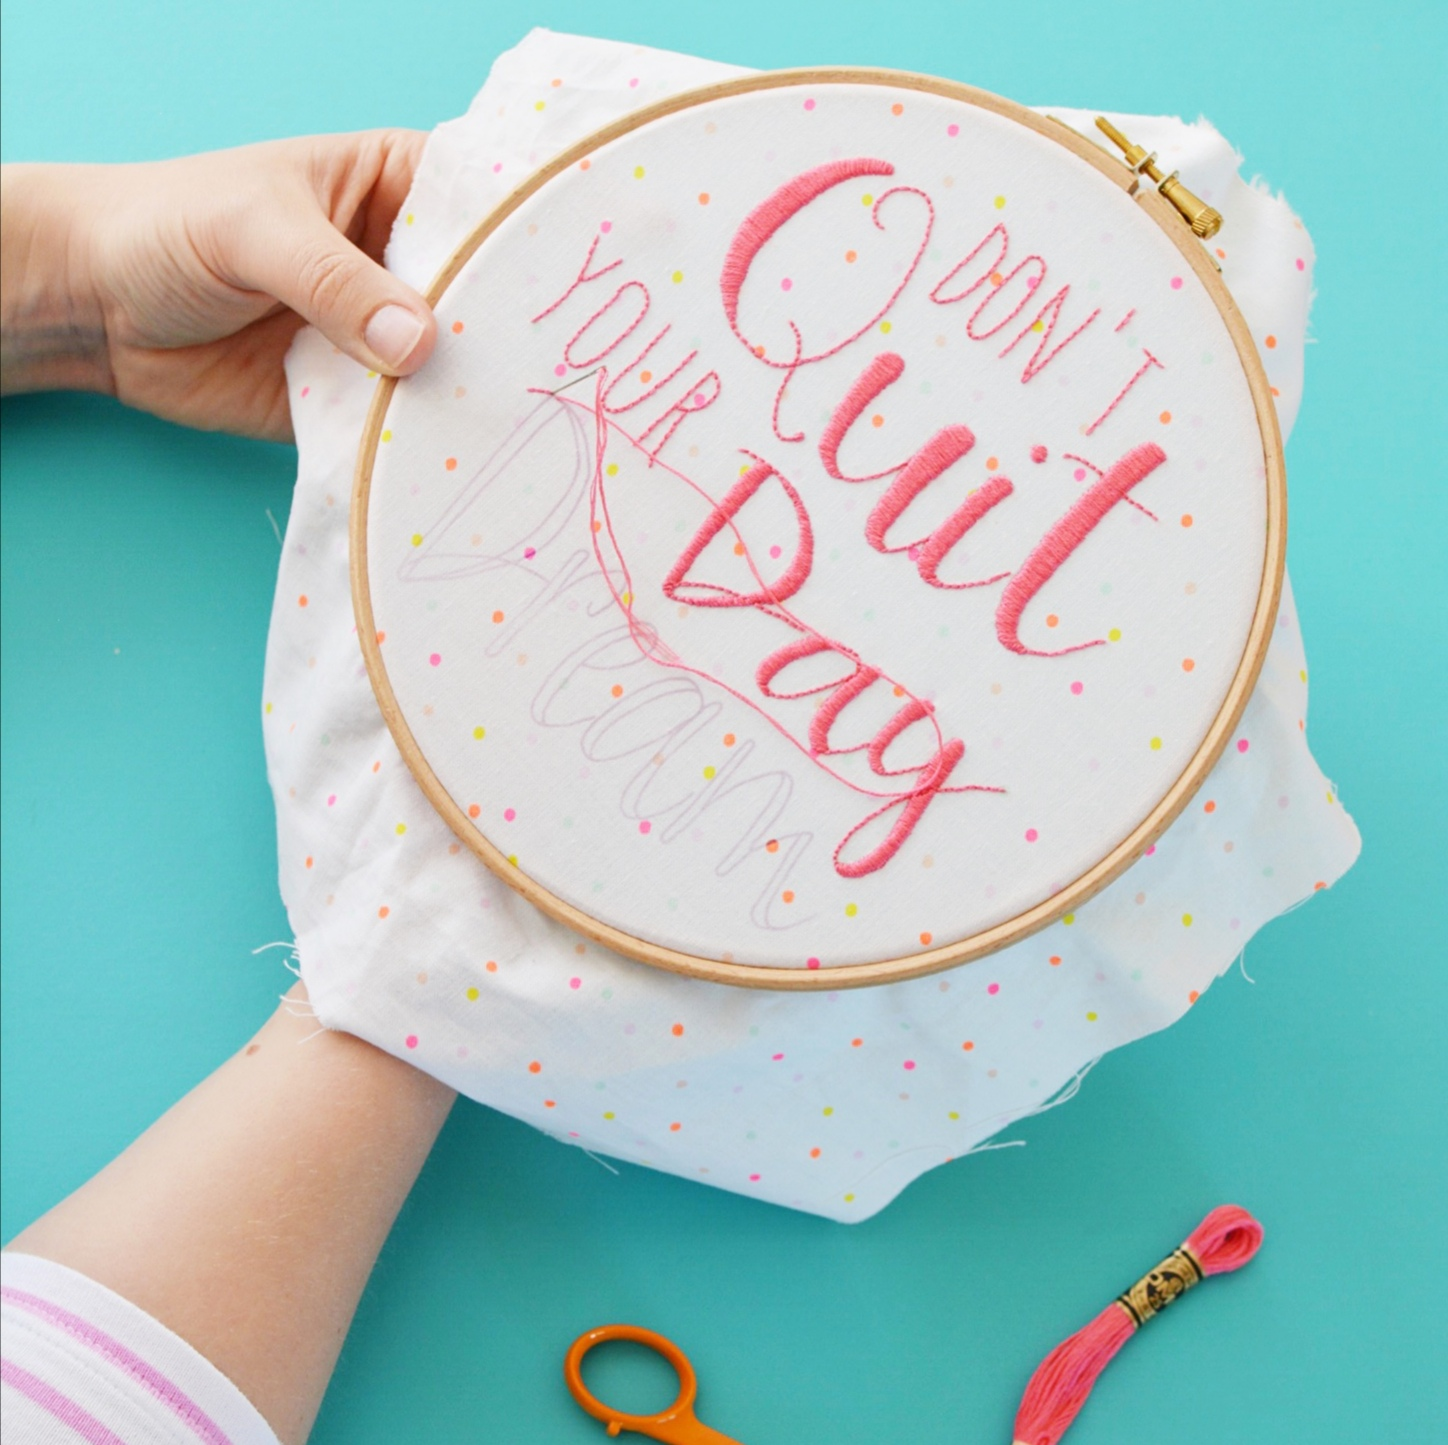 Workshop stitching | Hello! Hooray!